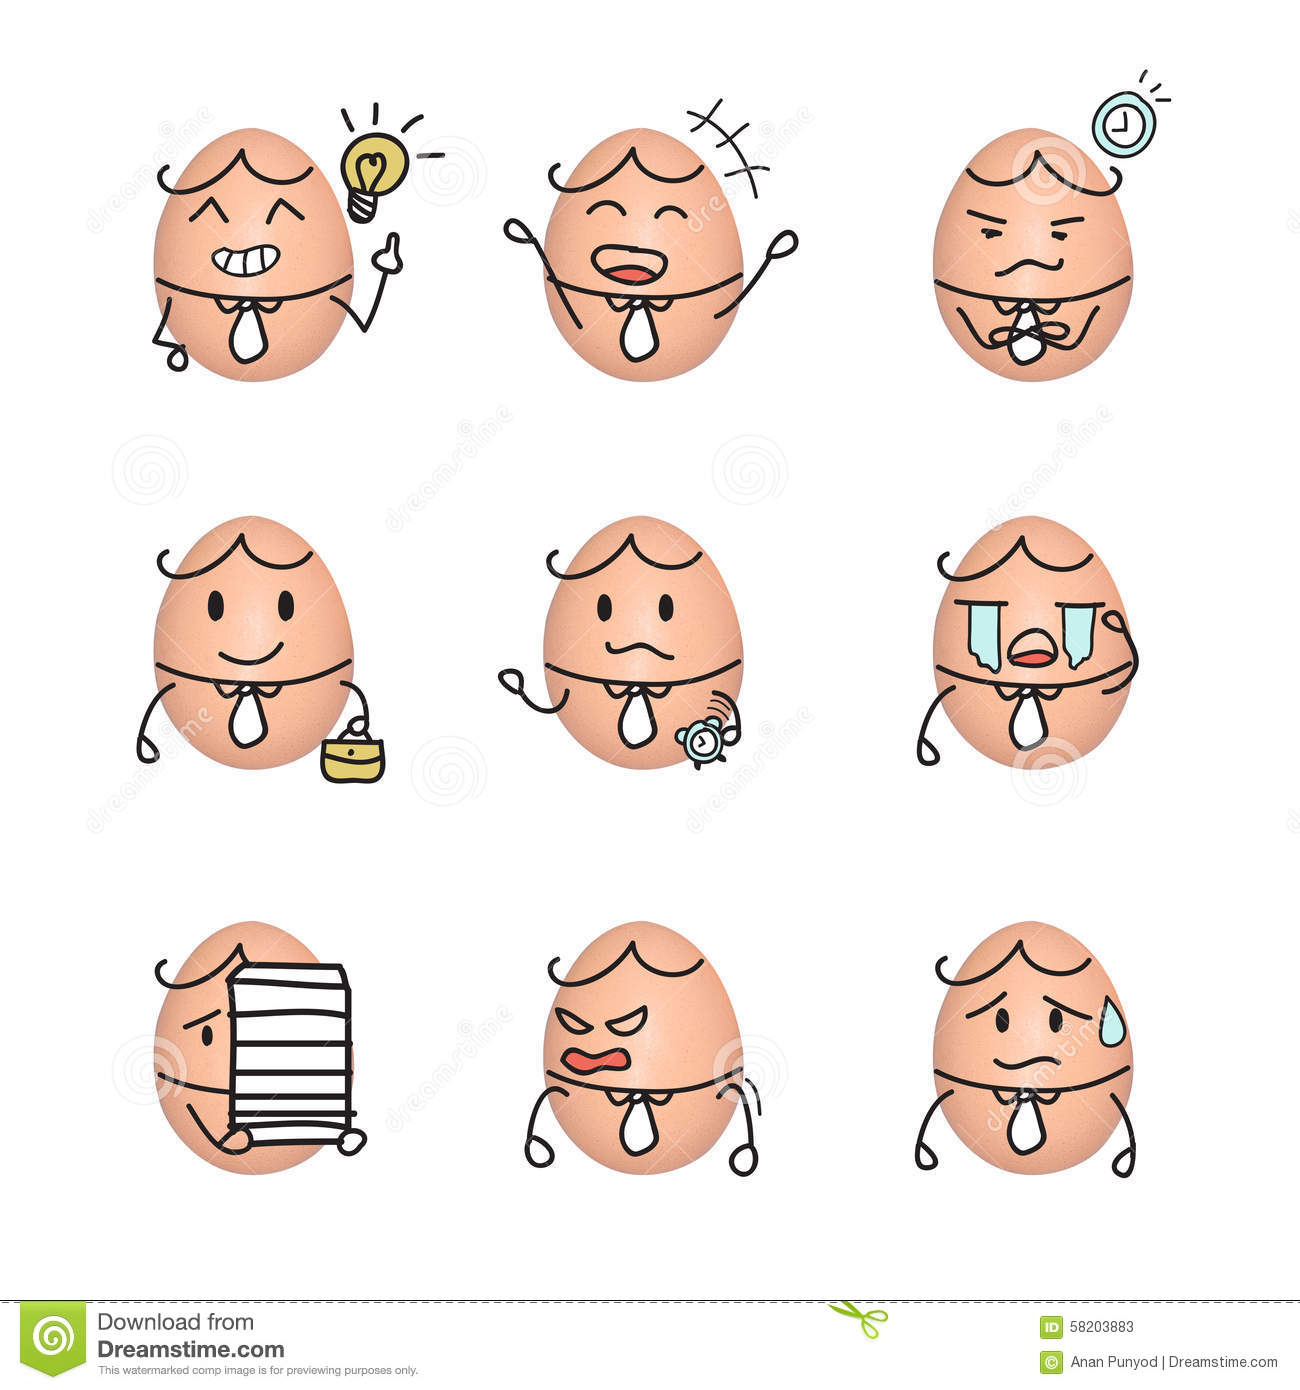 Egg Emoticon Business Man Action Cartoon Cute To Draw The Line